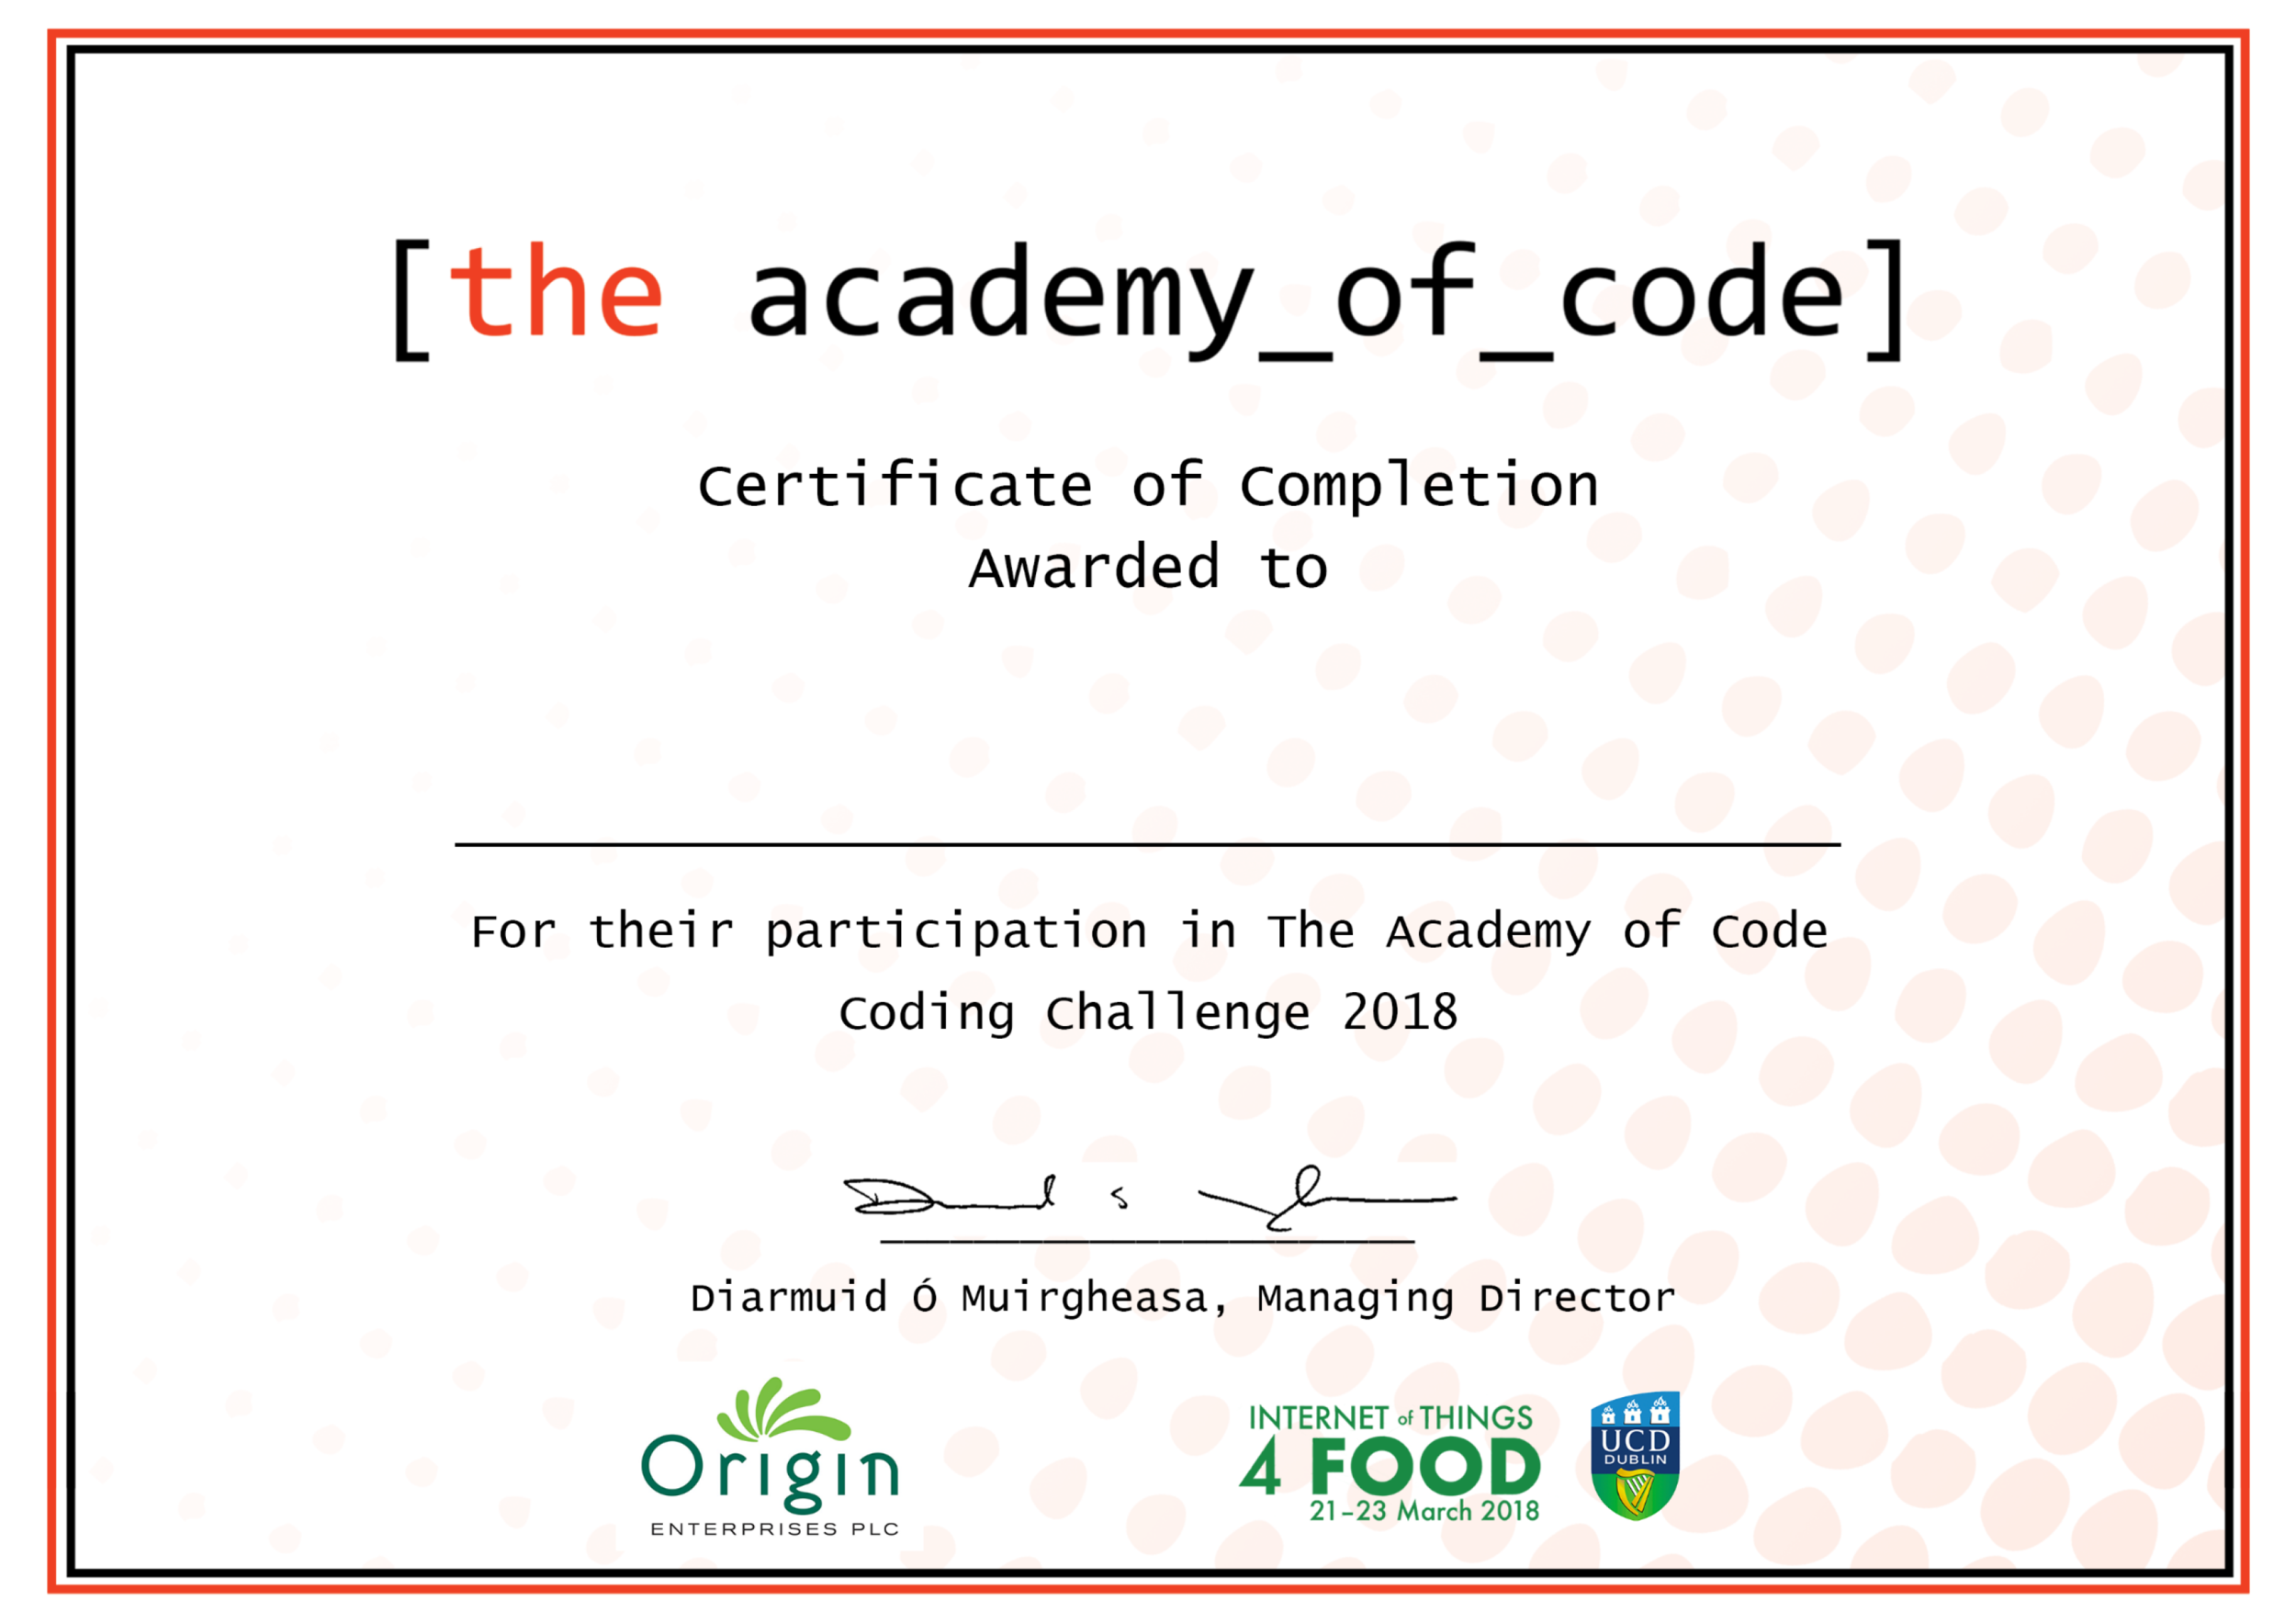 Blog — The Academy of Code